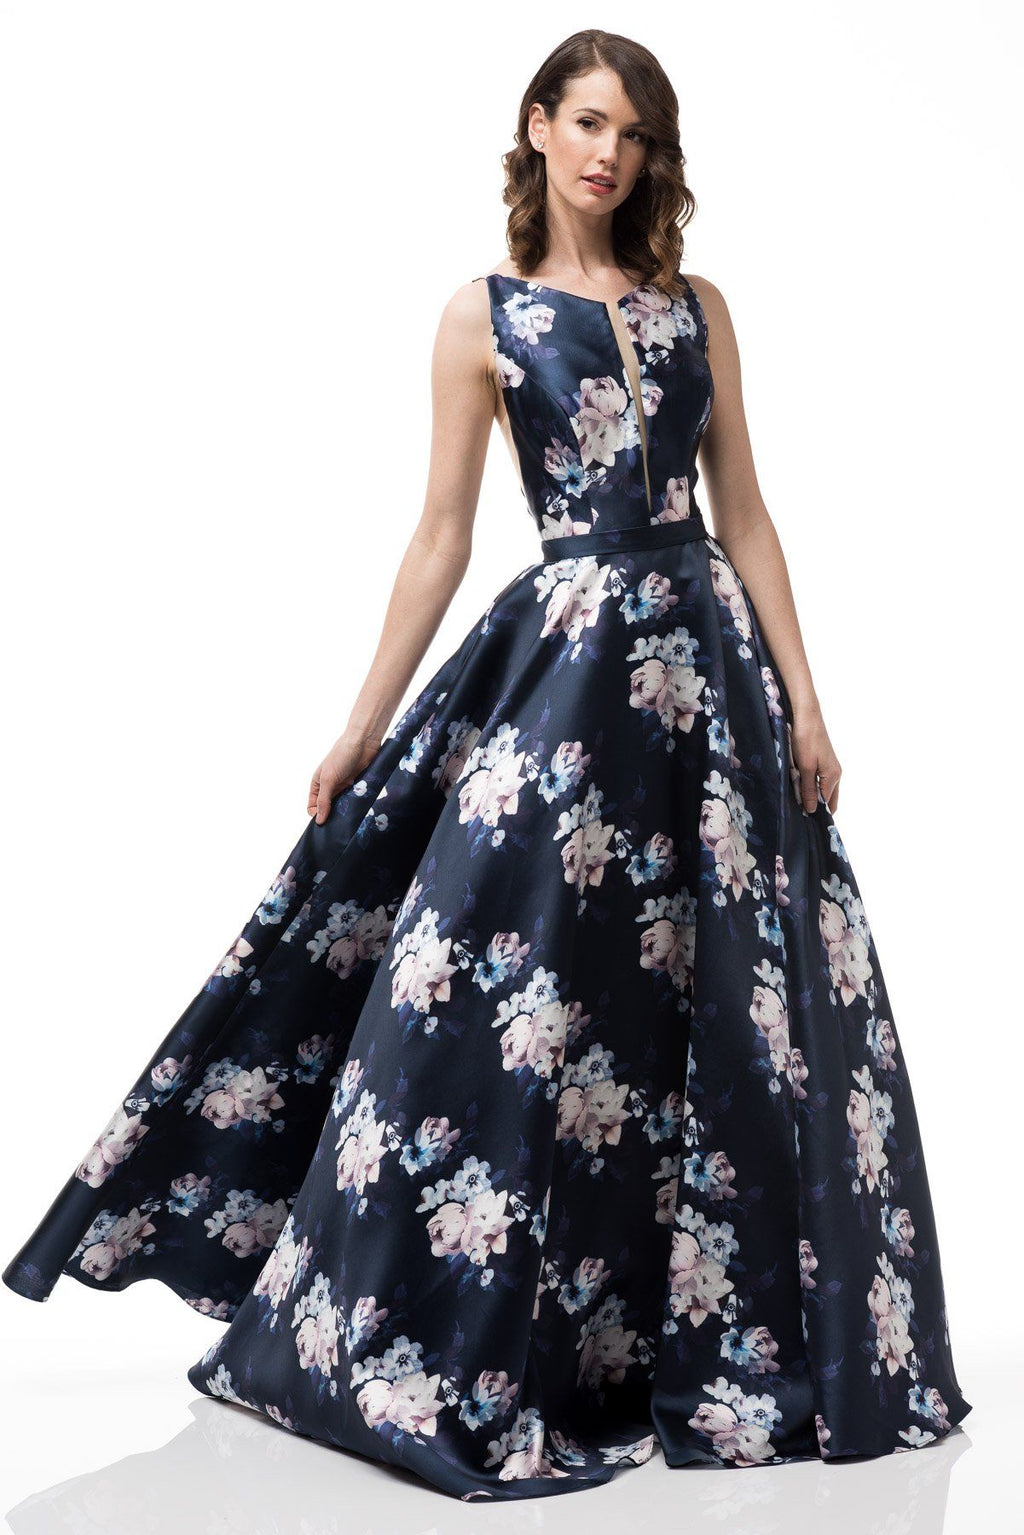 Navy floral dress #MZ3478-Simply Fab Dress